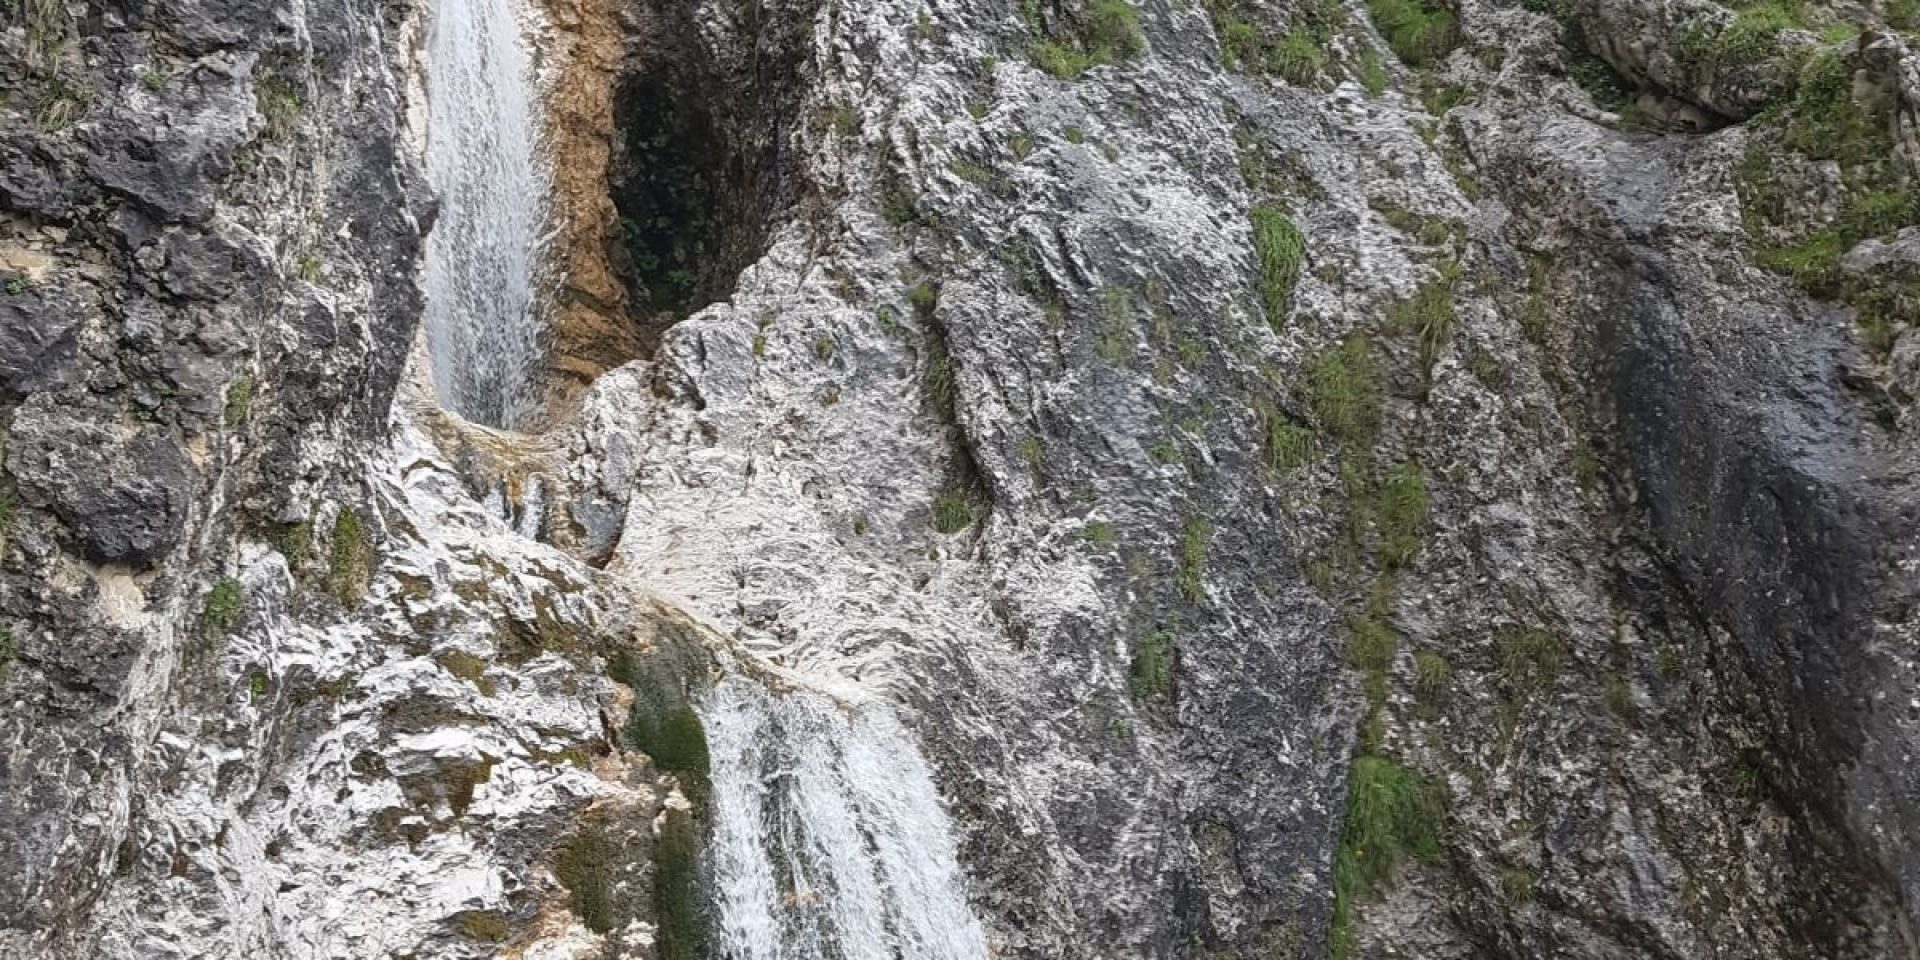 The Sella waterfalls with panoramic aperitif